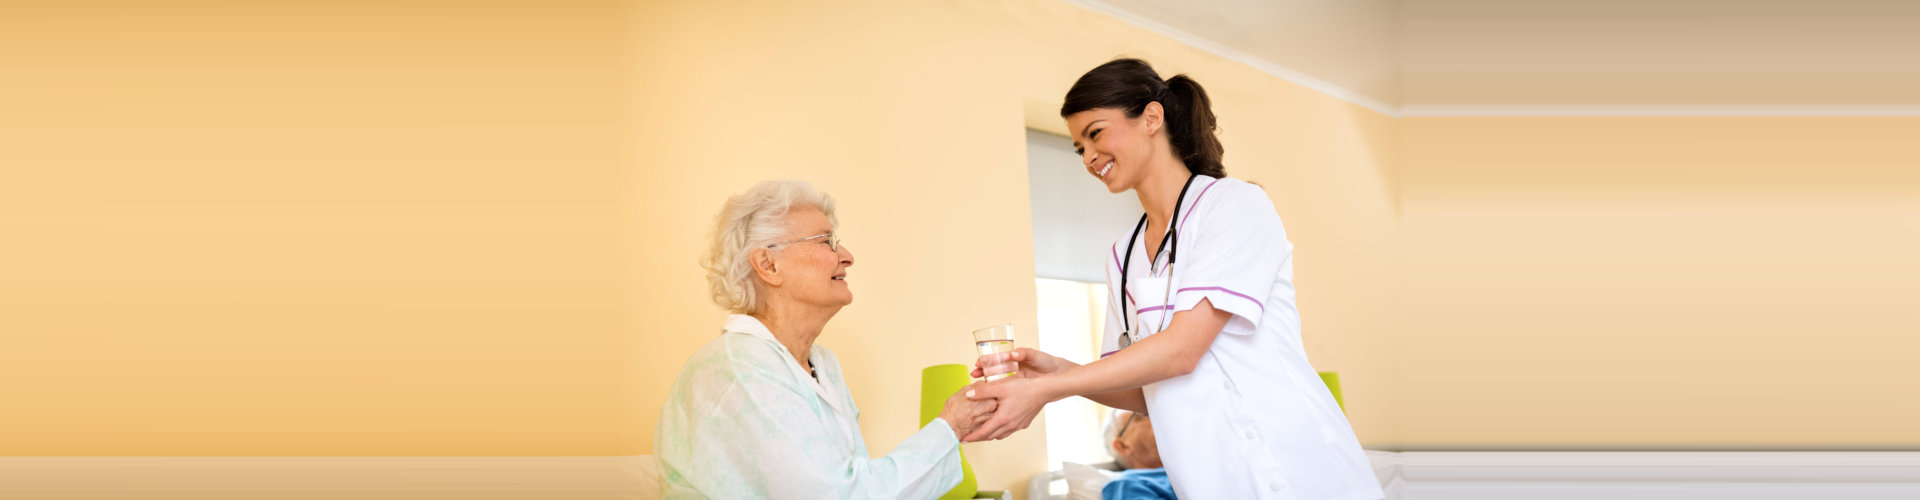 caregiver offering elder woman a glass of water concept